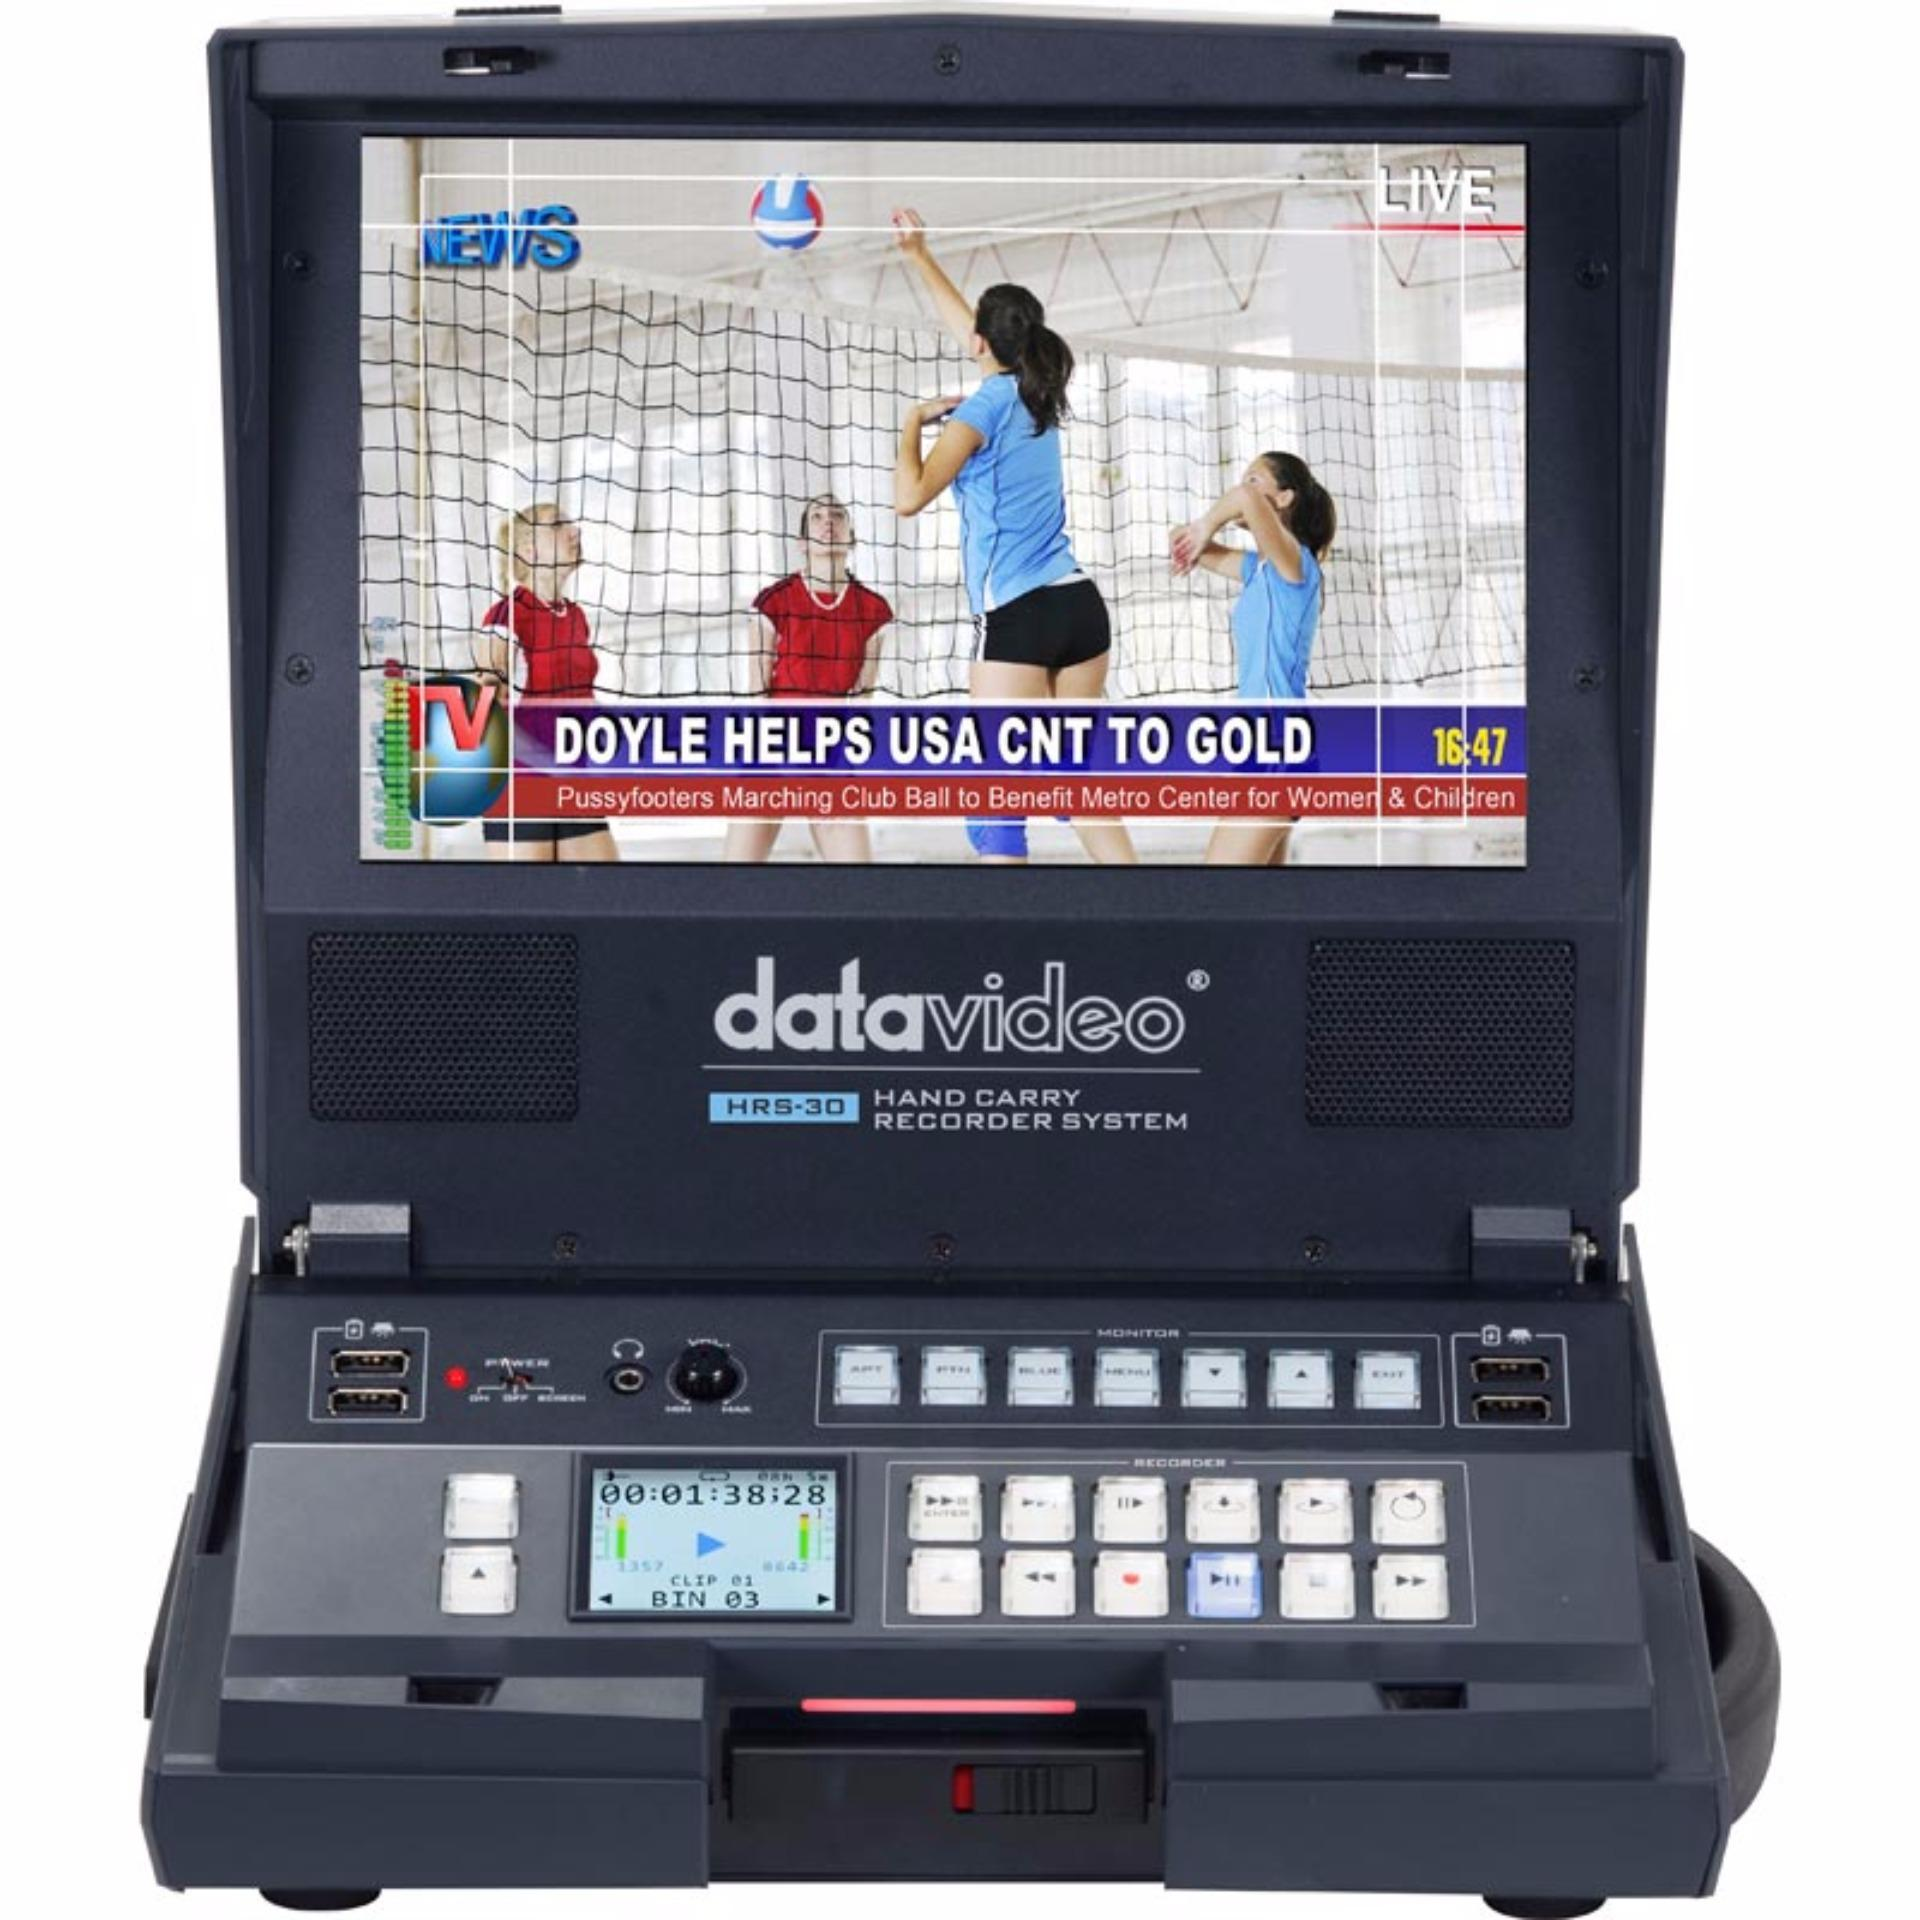 Datavideo HRS-30 Portable Hand Carried SD/HD-SDI Recorder with Built-In 10.1″ Monitor